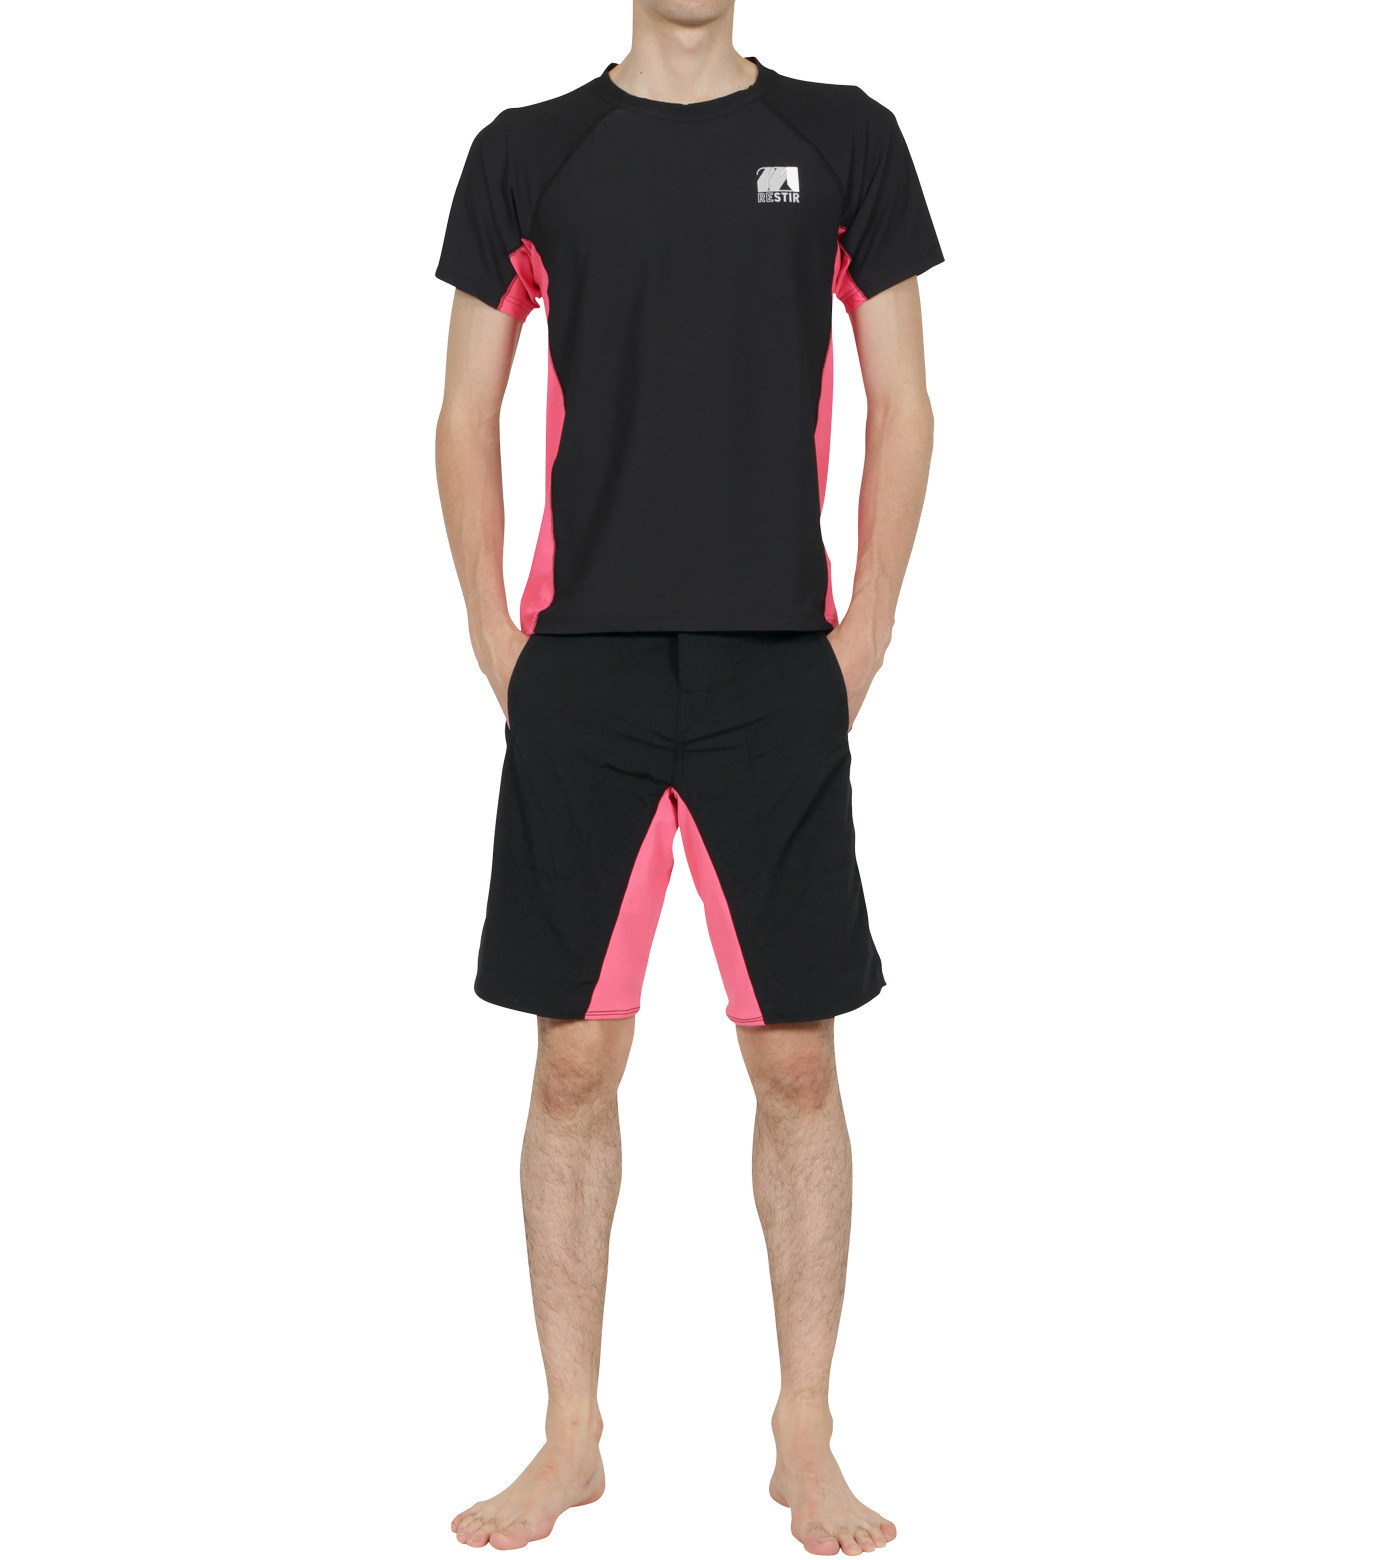 TWO TWO ONE(トゥートゥーワン)のSurf shorts long-PINK(SWIMWEAR/SWIMWEAR)-15N948002-72 拡大詳細画像3